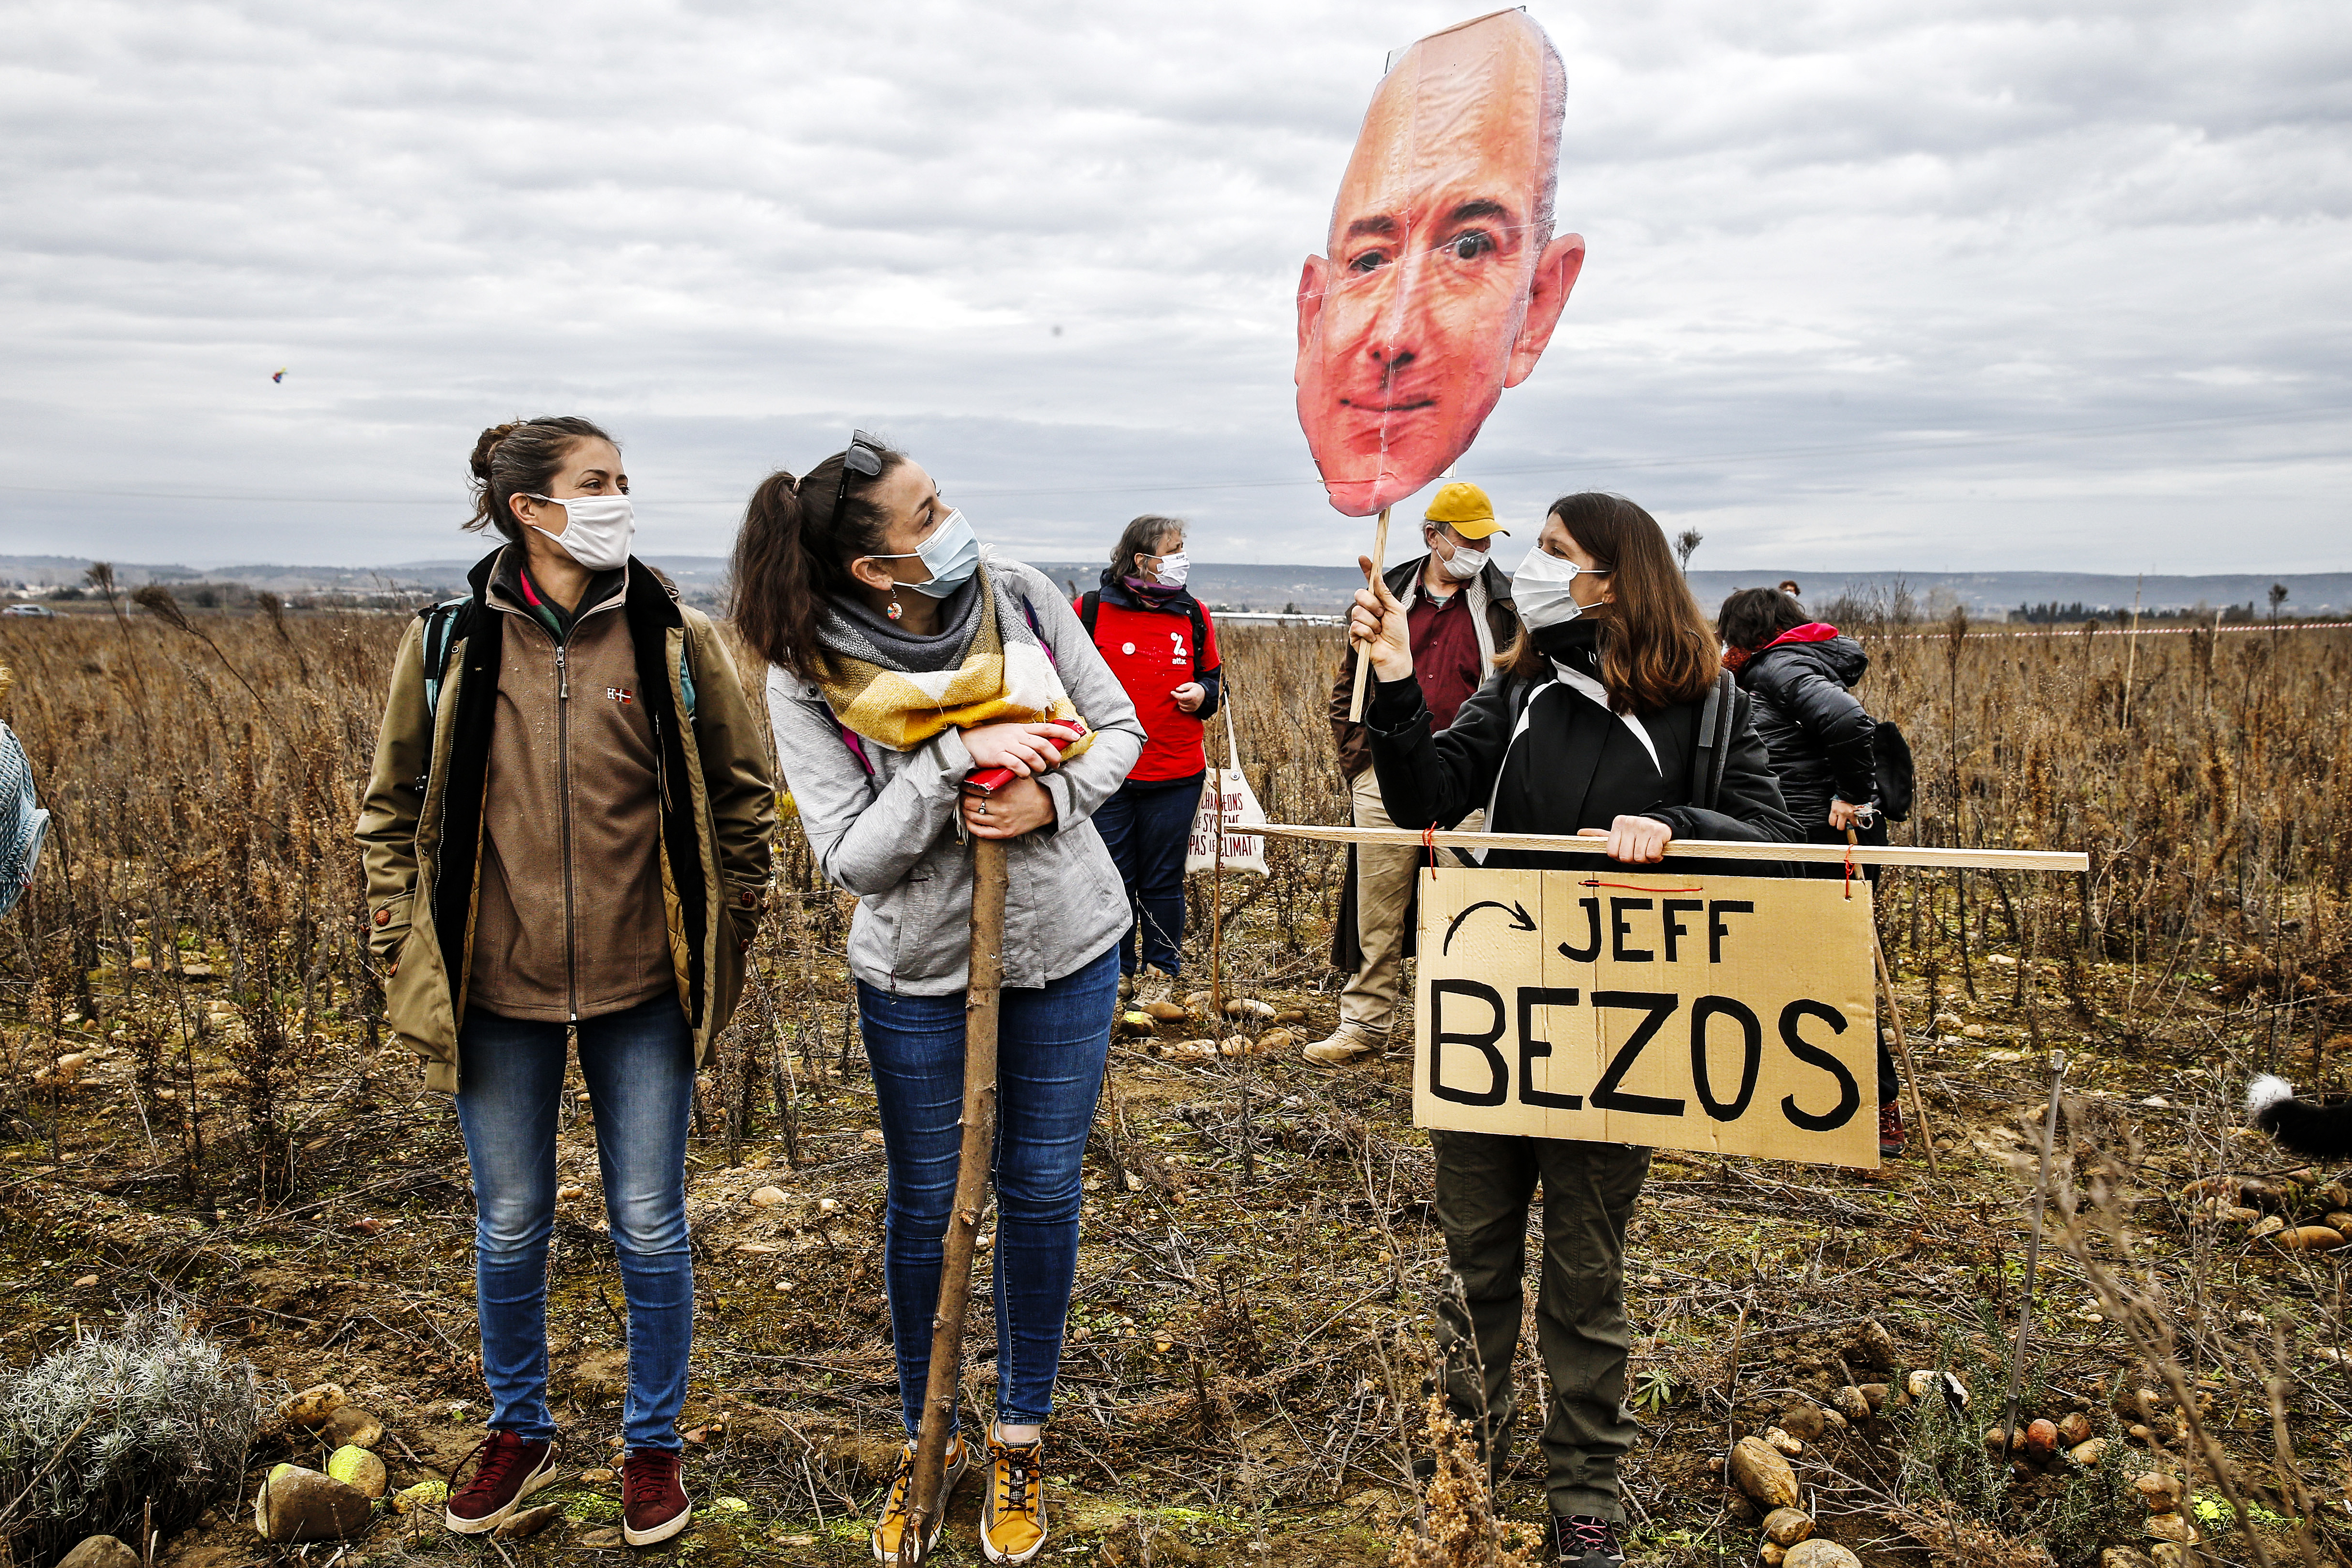 """Protesters standing in a scrubby field and holding a cutout of Jeff Bezos's face along with a sign saying """"Jeff Bezos."""""""